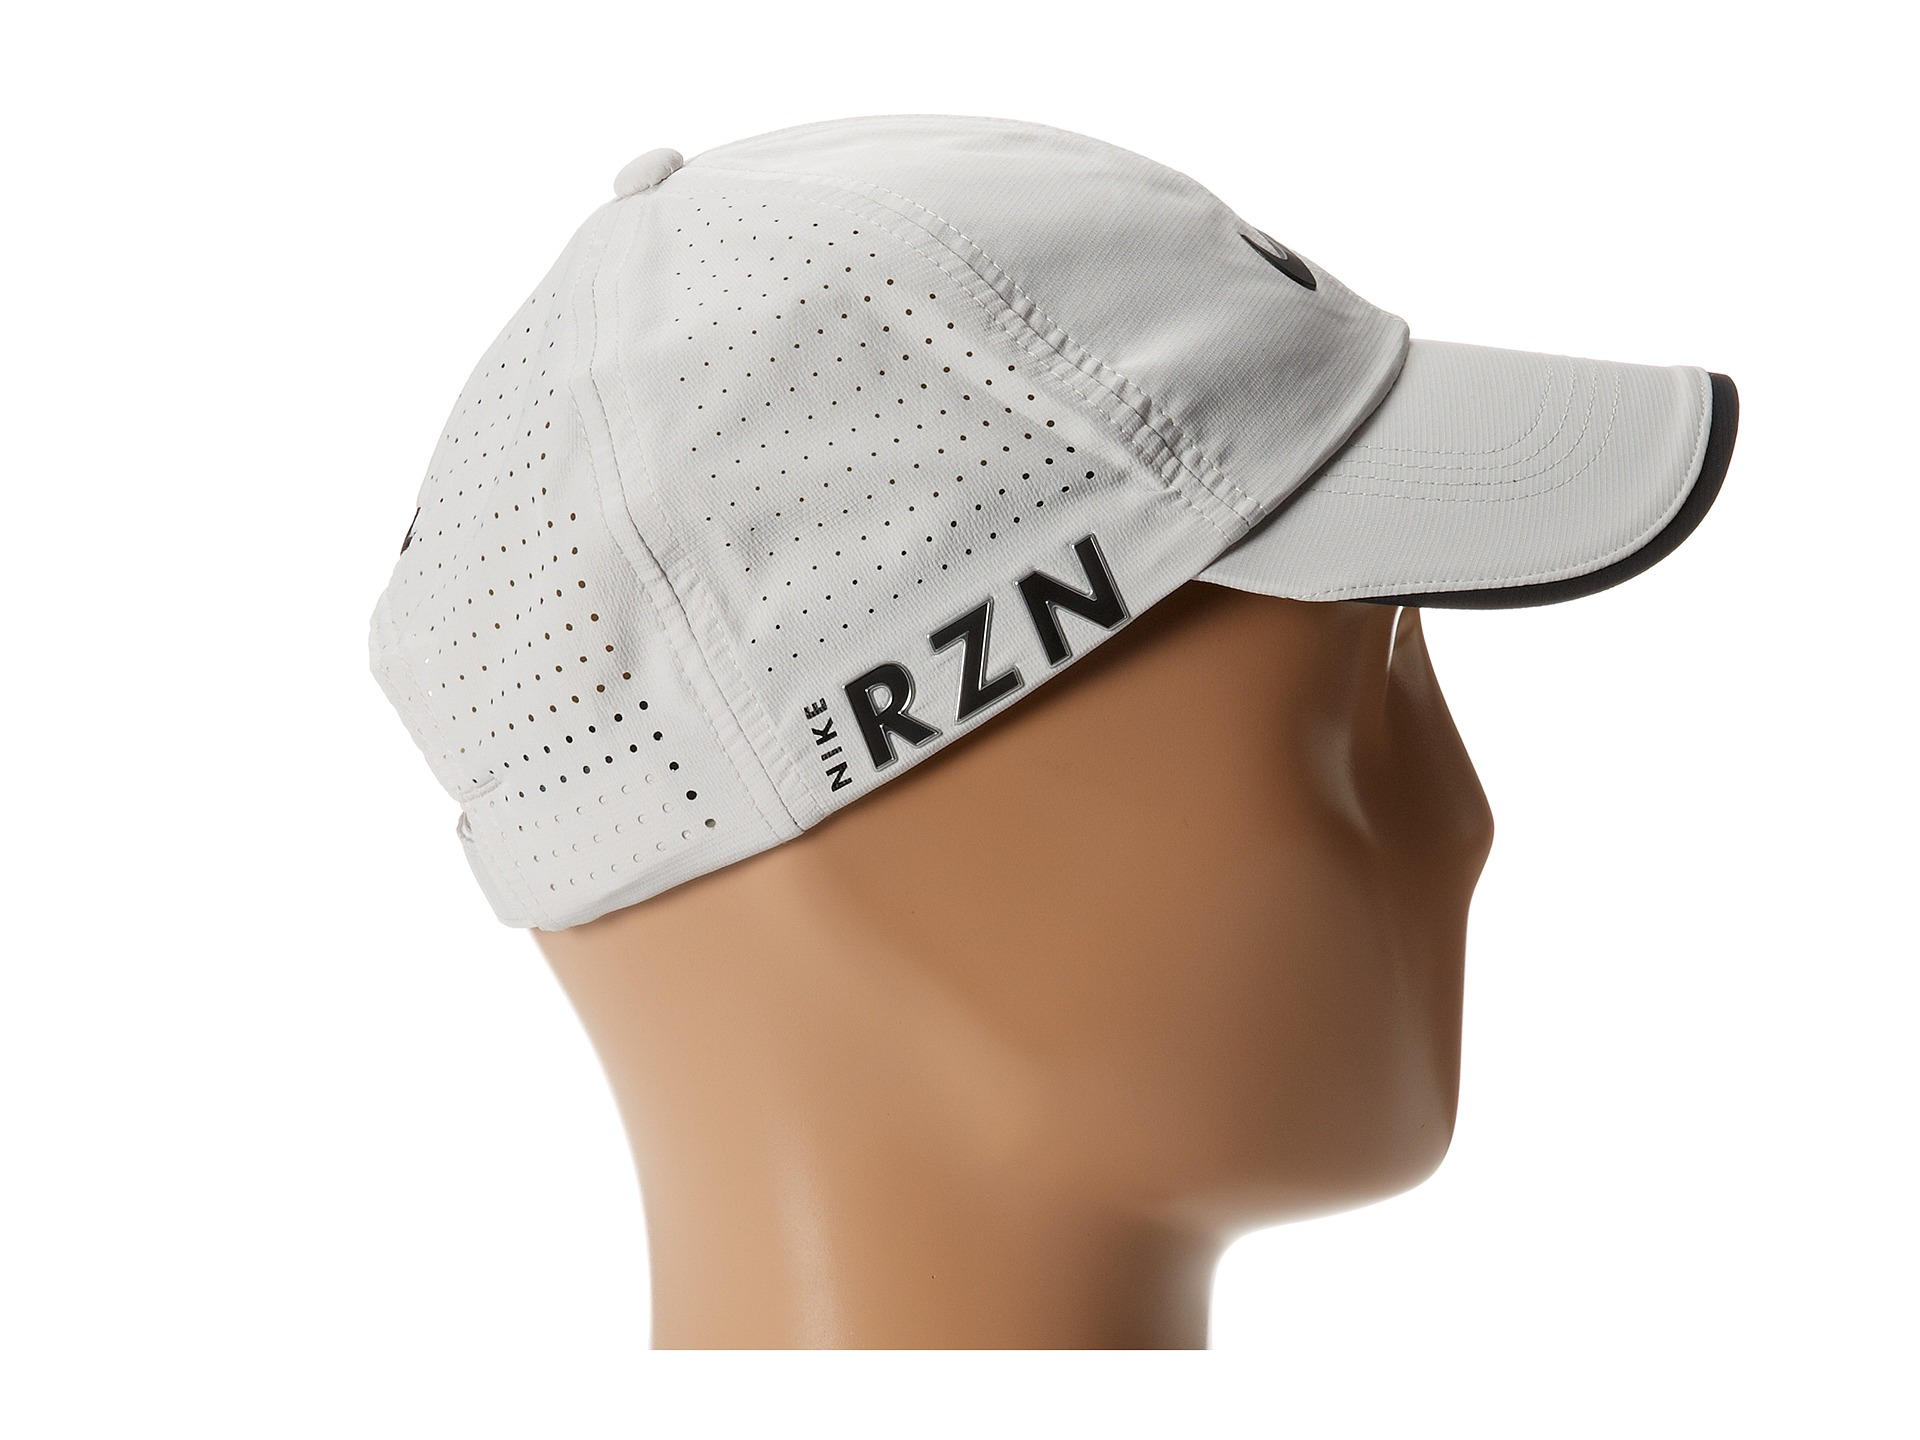 Lyst - Nike Tour Perforated Cap in White for Men f3121648a7e6